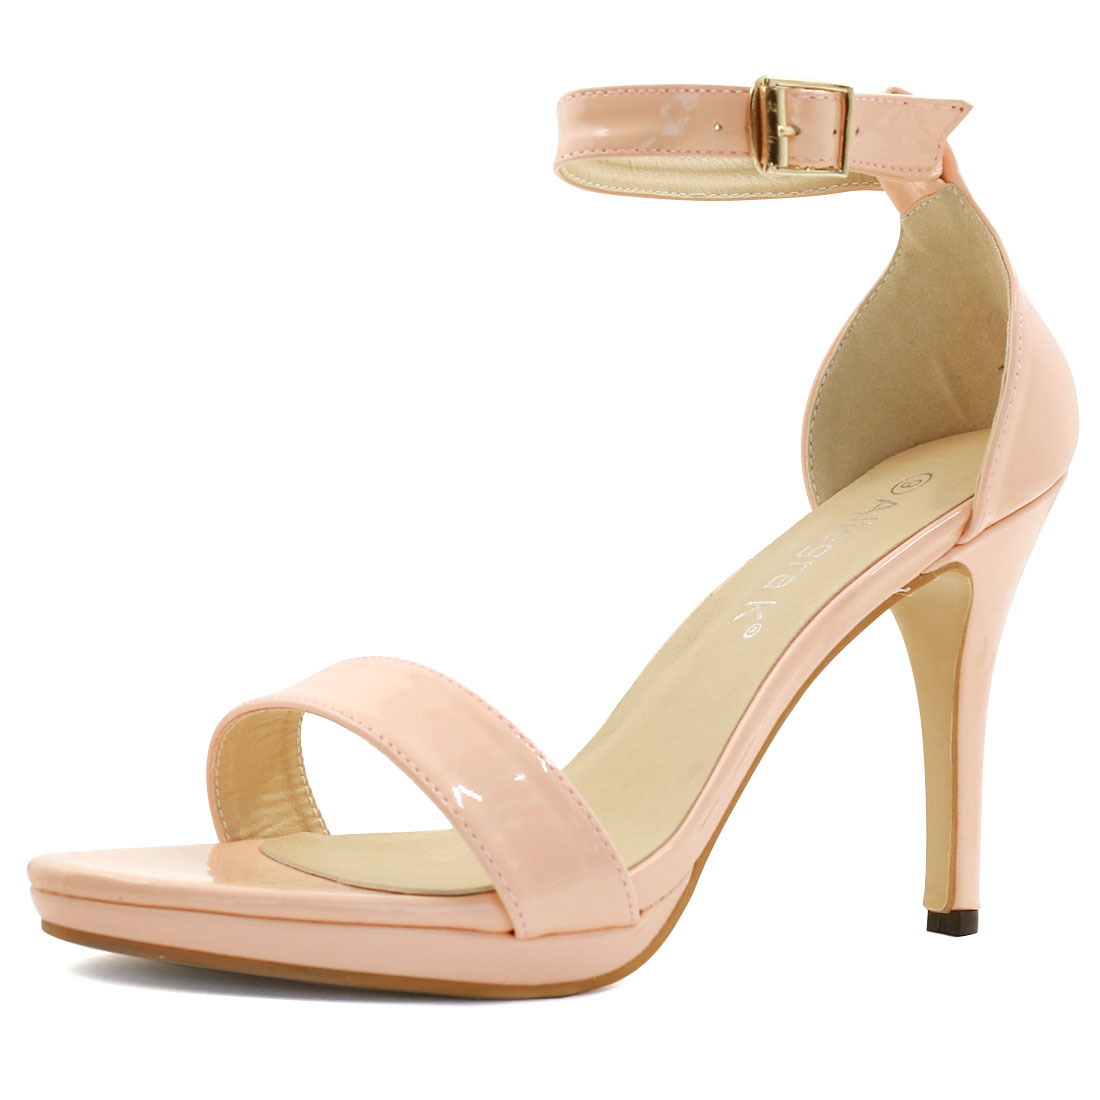 Woman Open Toe High Heel Metallic Ankle Strap Sandals Pink US 9